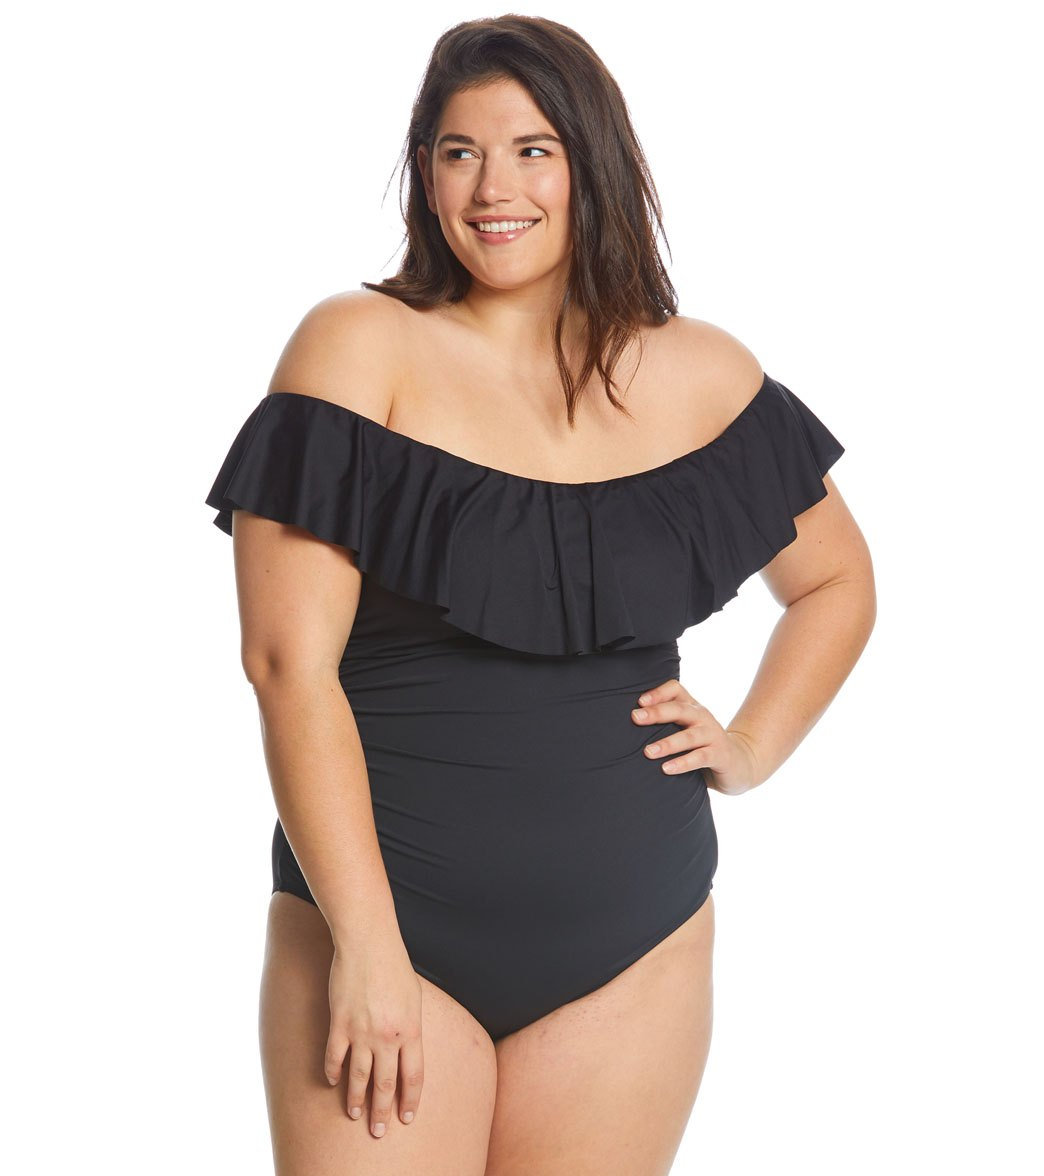 93423c68b57bd La Blanca Plus Size Island Goddess Off The Shoulder One Piece Swimsuit at  SwimOutlet.com - Free Shipping